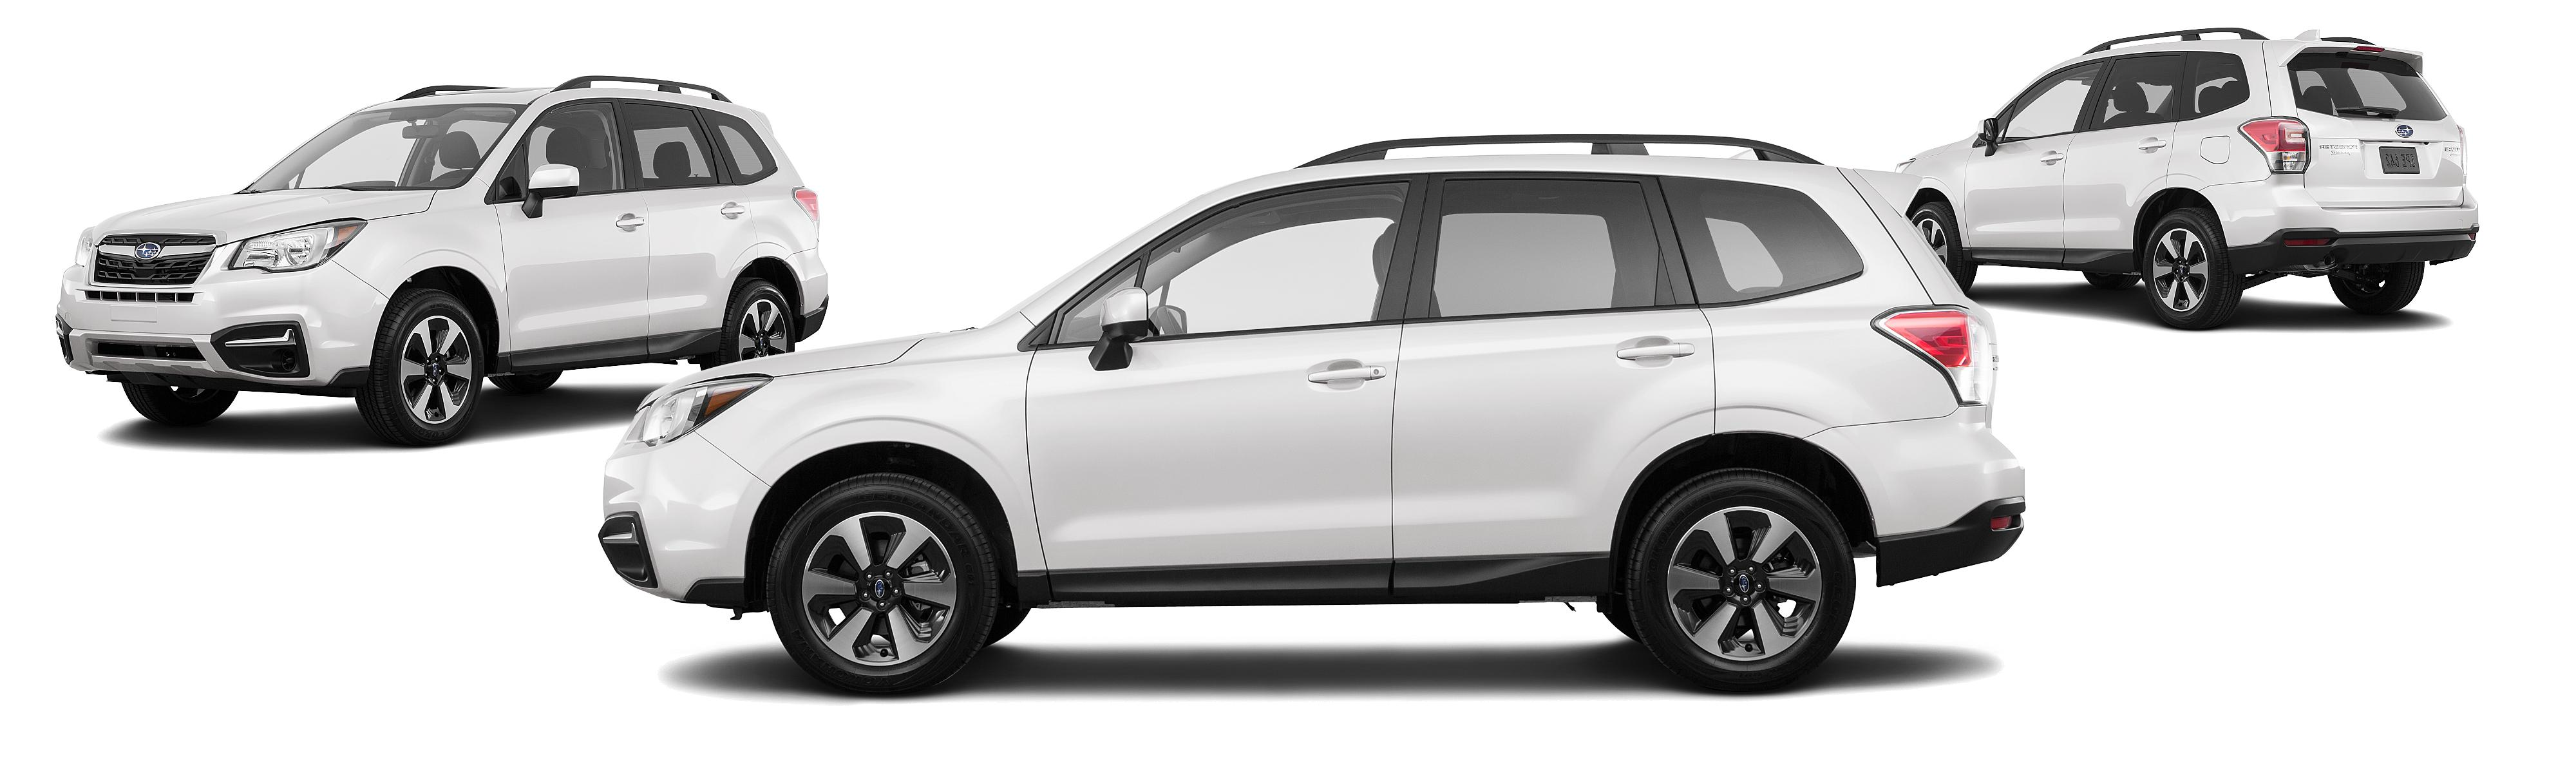 2017 Subaru Forester Awd 2 5i Premium 4dr Wagon 6m Research Groovecar